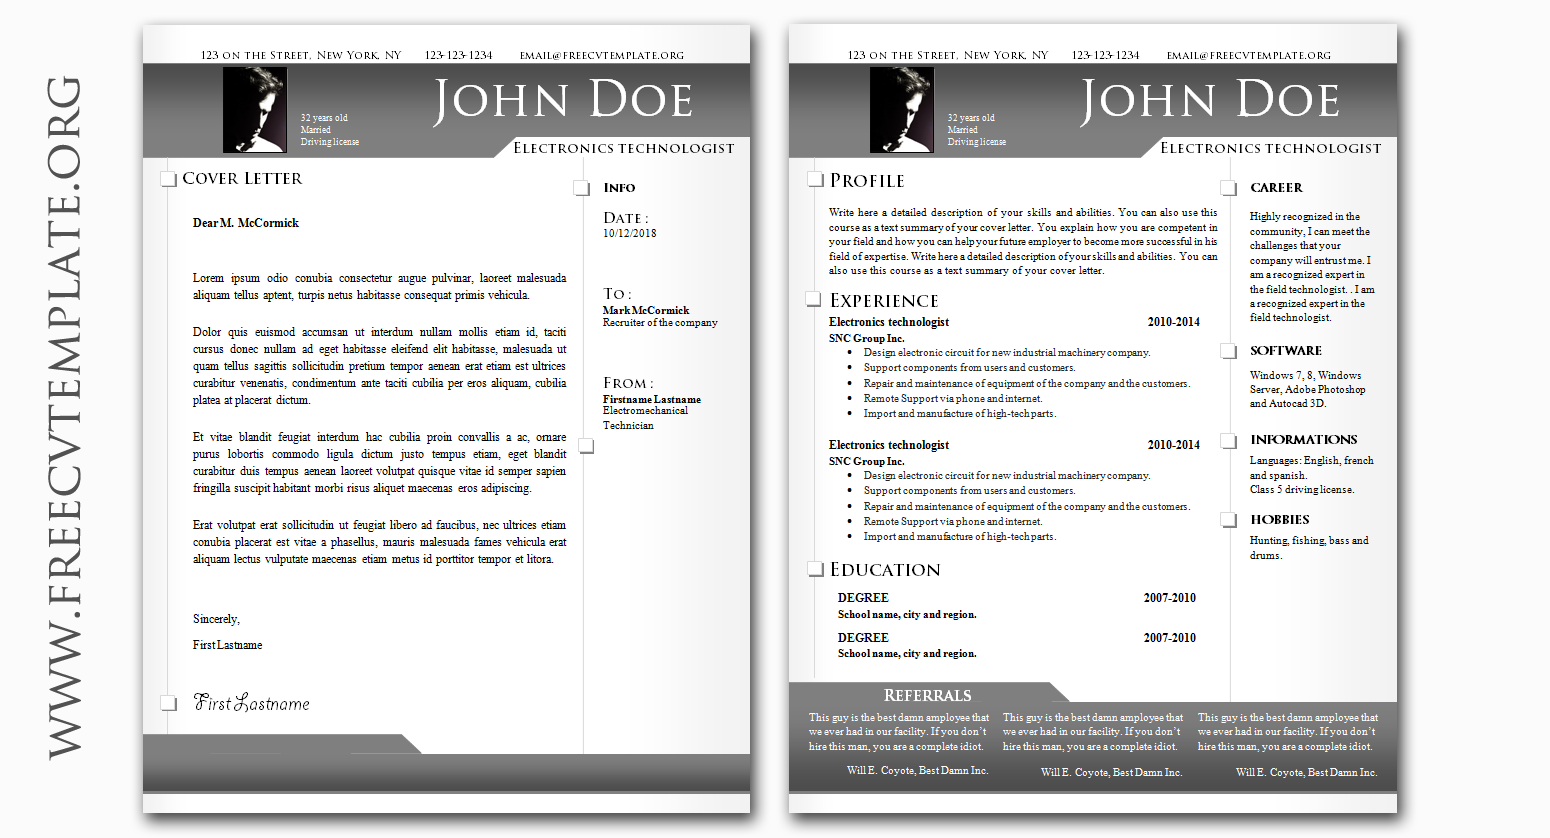 Classic and Original CV & Cover Letter